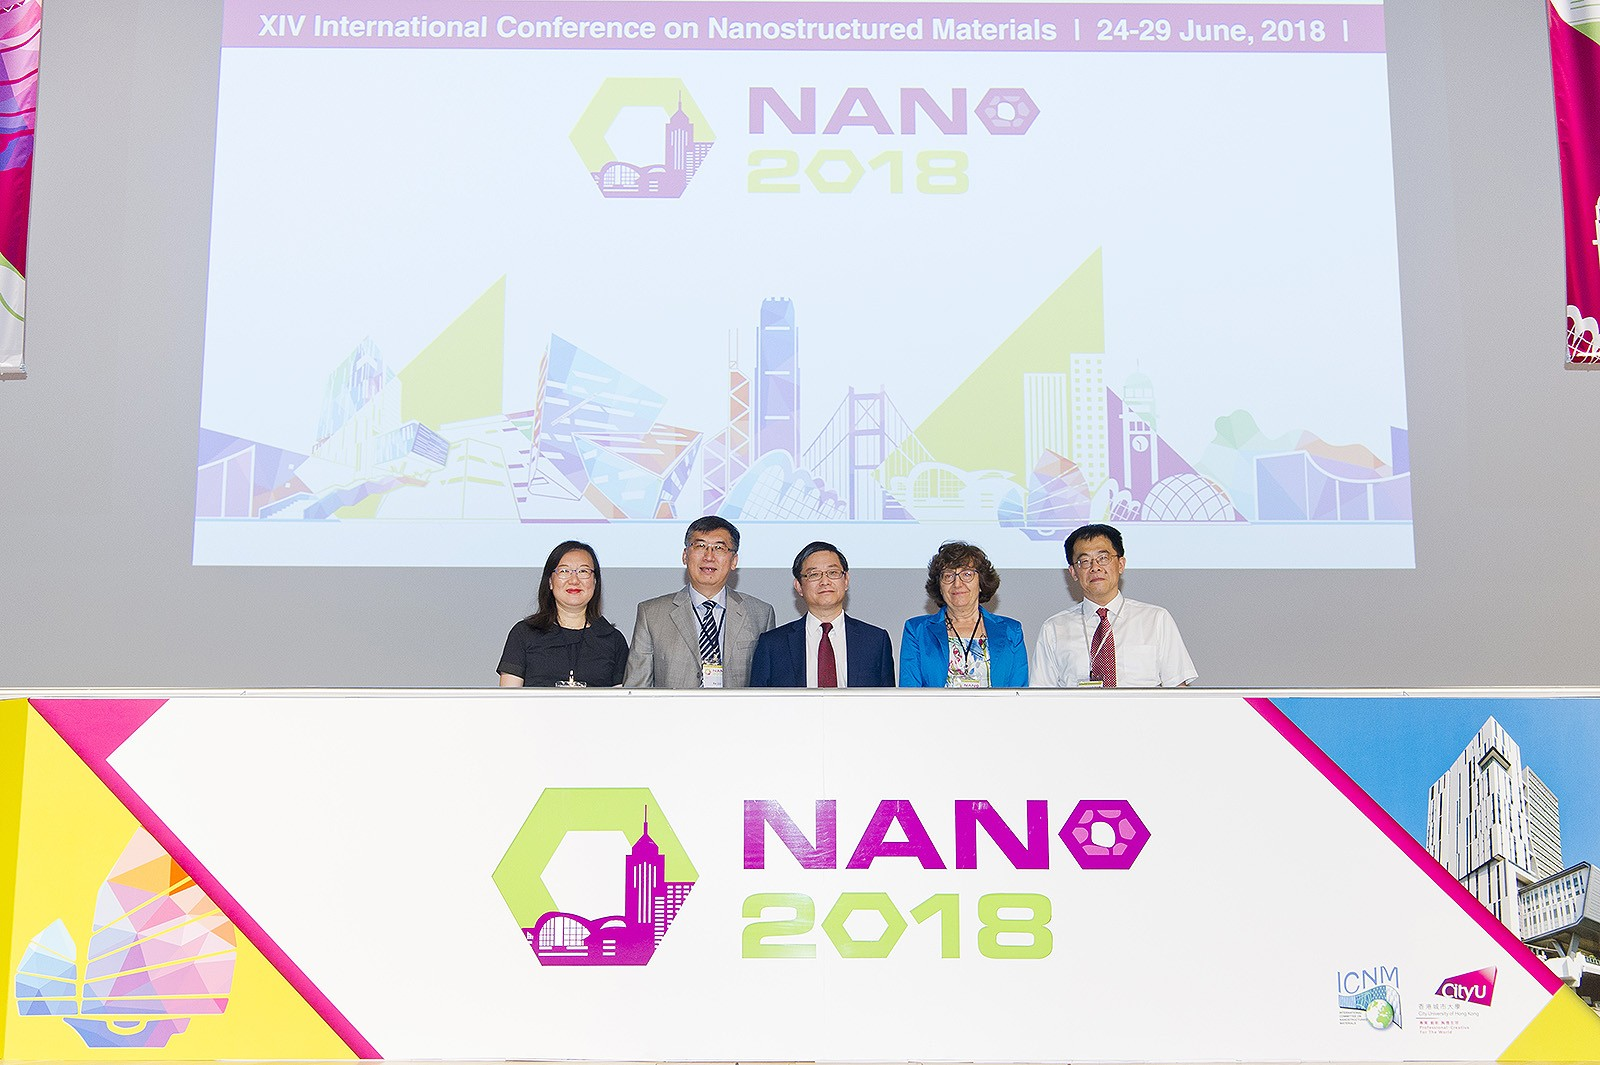 (From left) Professor Lu Kei and Professor Lu Ke, Co-chair of NANO 2018; Professor Lu Jian, Chair of NANO 2018; Dr Elisabetta Agostinelli, Chairman of International Committee on Nanostructured Materials; and Professor Nie Jianfeng, Chair of the next NANO, officiate the Conference.